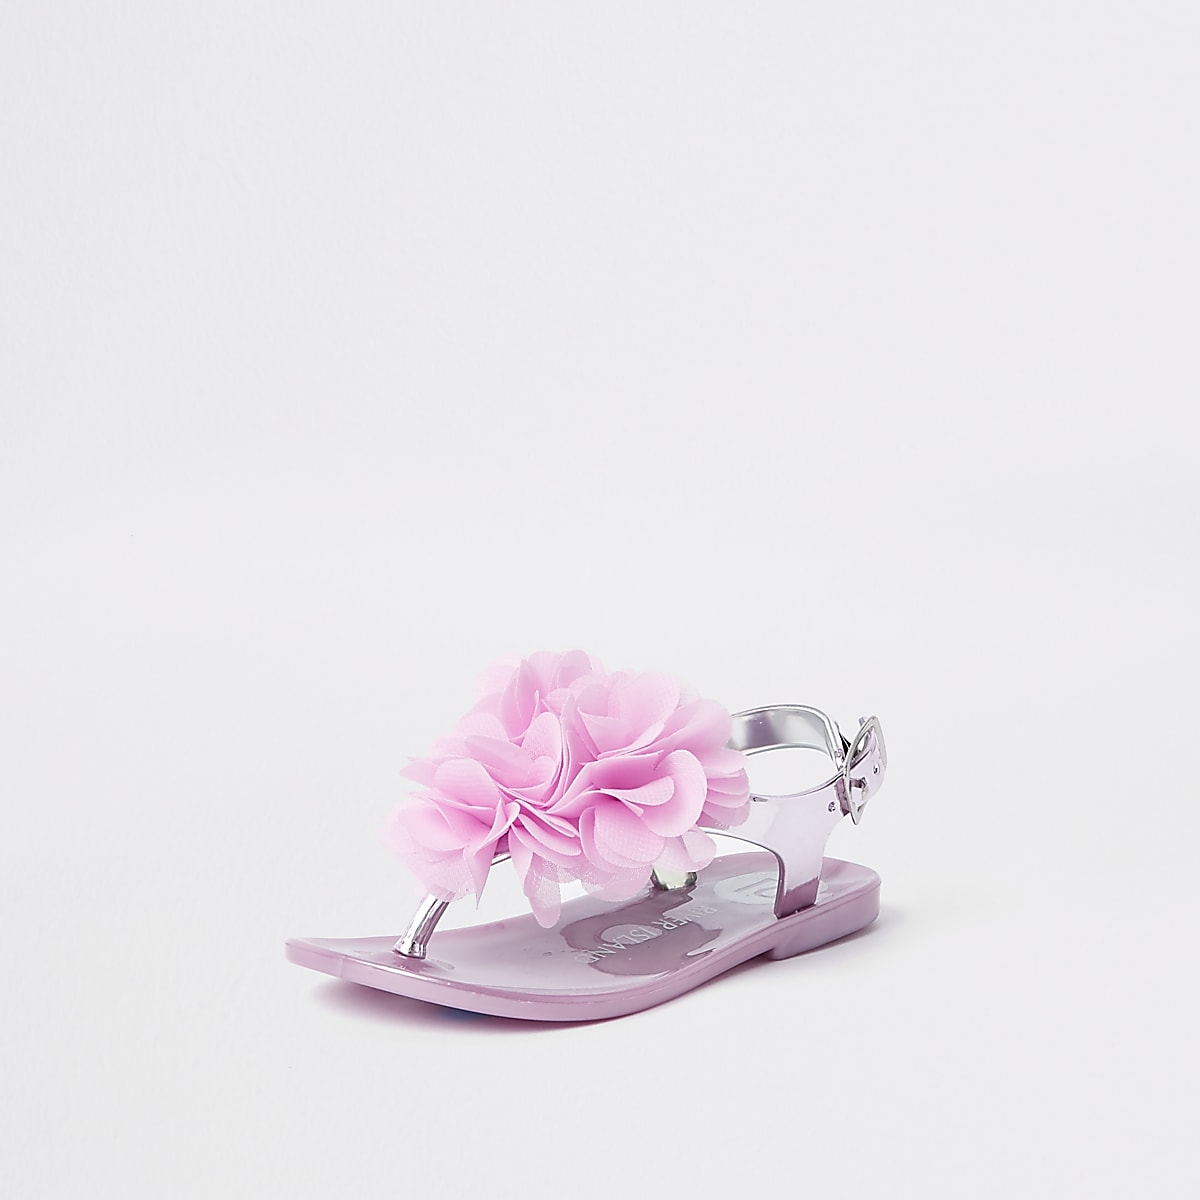 Pink Sandal Jelly Girls Metallic Mini Corsage NP0kXwO8nZ